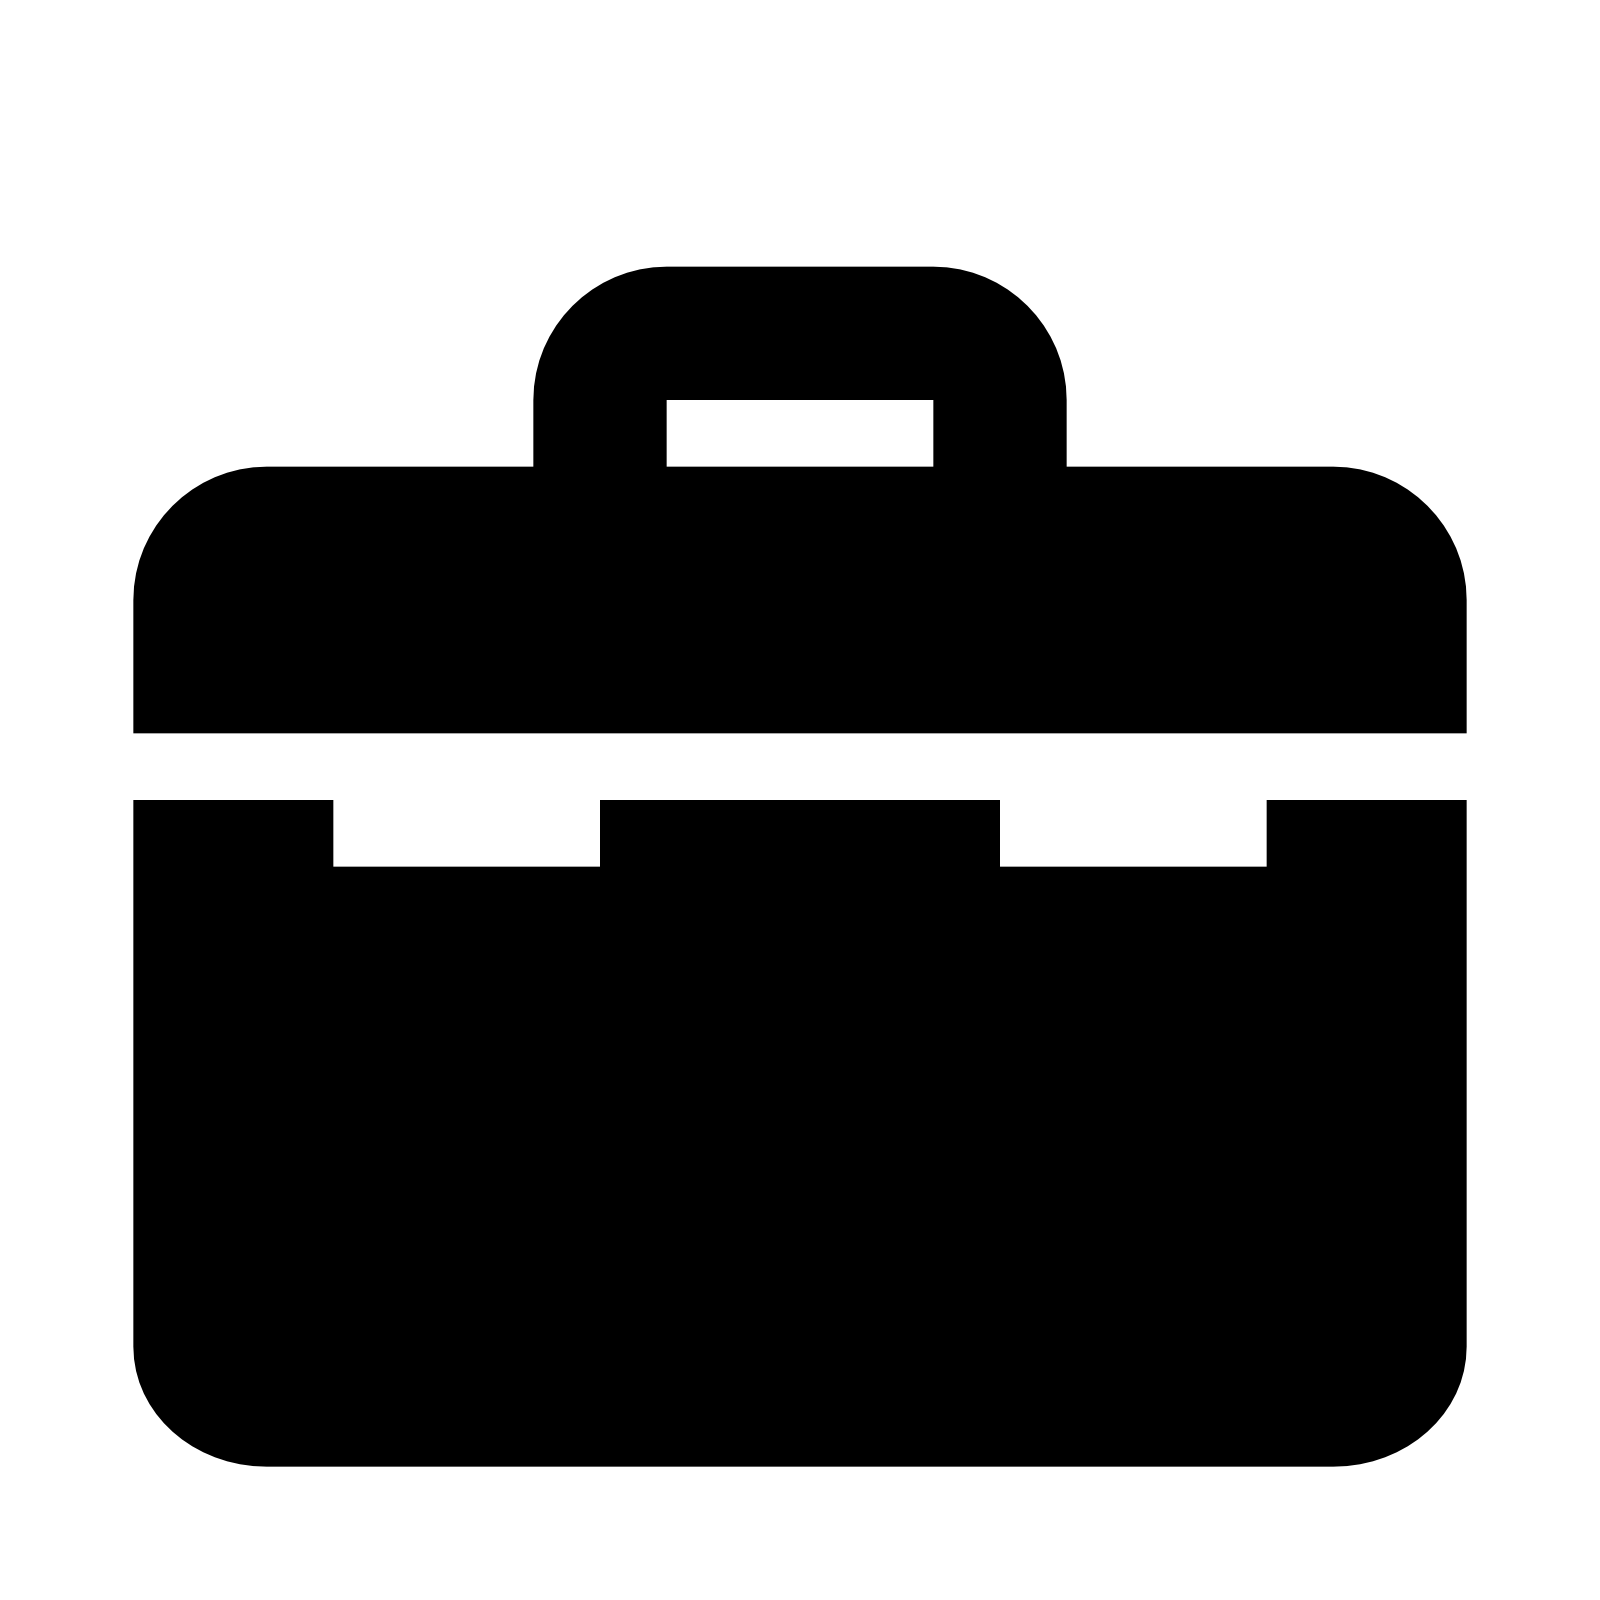 PNG Toolbox Black And White - 80638